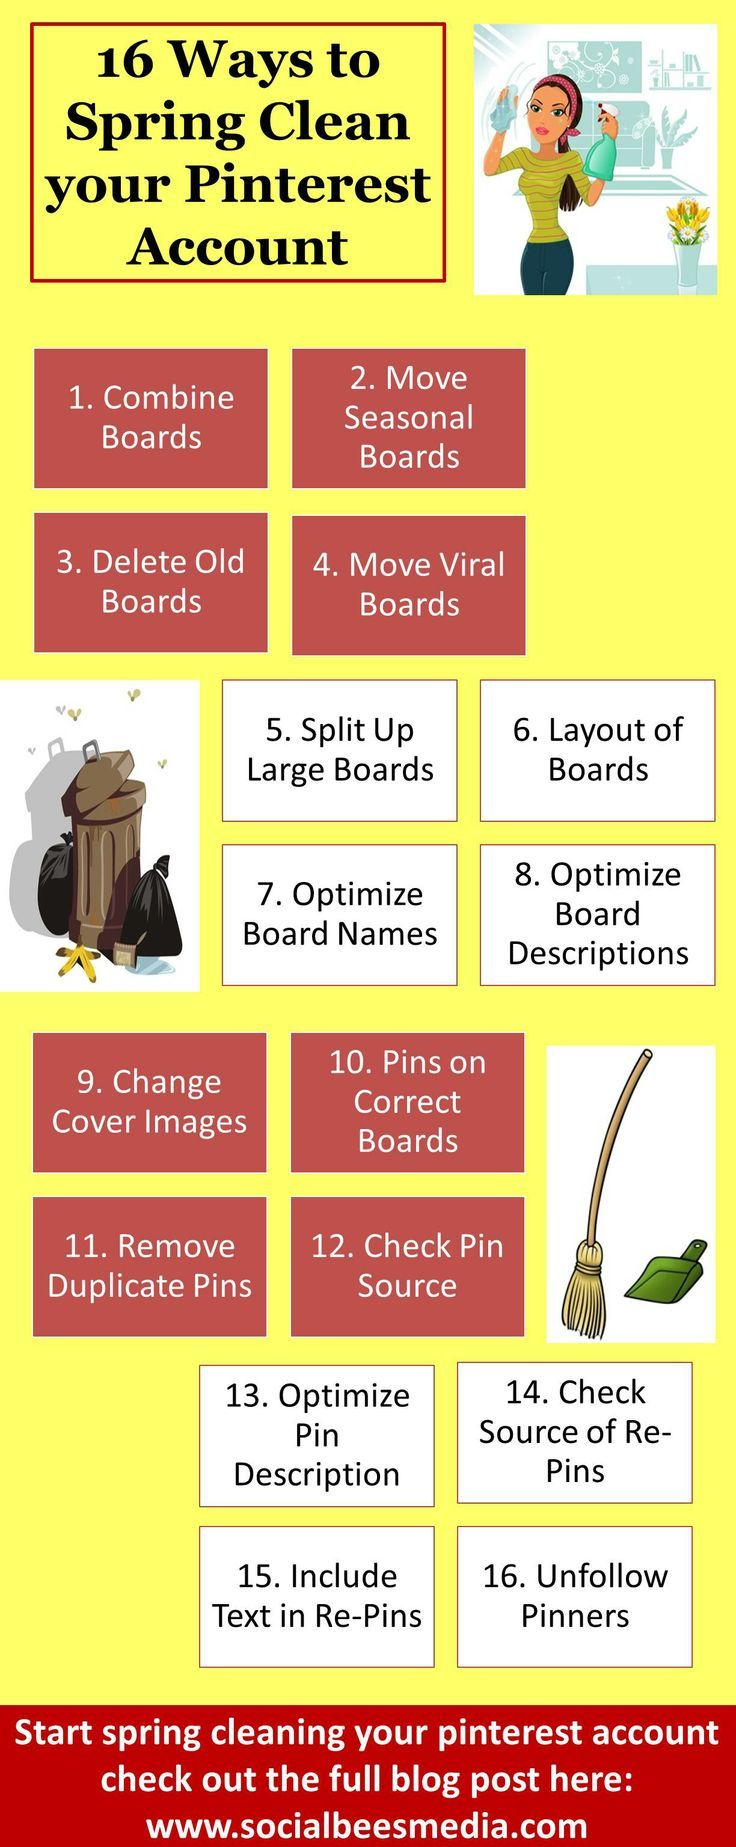 Spring Clean your Pinterest Account with these 16 tips, to get more followers and re-pins! http://socialbeesmedia.com/16-ways-clean-pinterest-account/